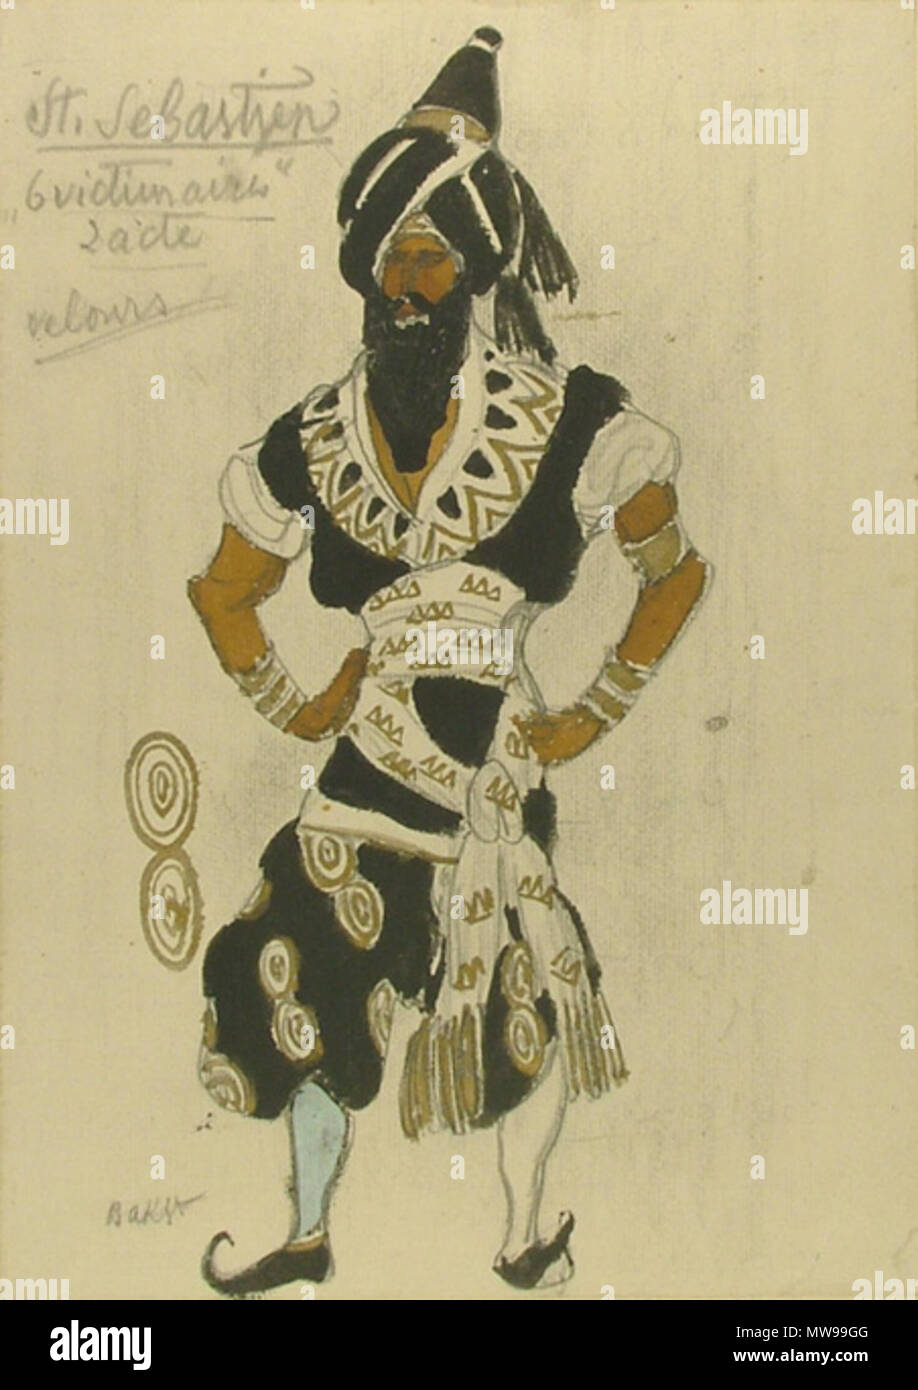 . Design for a Costume in 'St Sebastien' Salmina-Haskell (1989) 7. Graphite, watercolour and gold paint over graphite on off-white laid paper. Sheet: 314 x 223 mm. Signed in graphite lower left: Bakst; Inscribed in graphite upper left: St. Sebastien / '6 victimaires' / 2 acte / velours The Ashmolean Museum, Oxford. Bequeathed by Mikhail Vasil'evich Braikevitch, 1949; WA1949.379.2. 20th century. Bakst 400 Marthyre de S. Sebastien by L. Bakst 14 - Stock Image